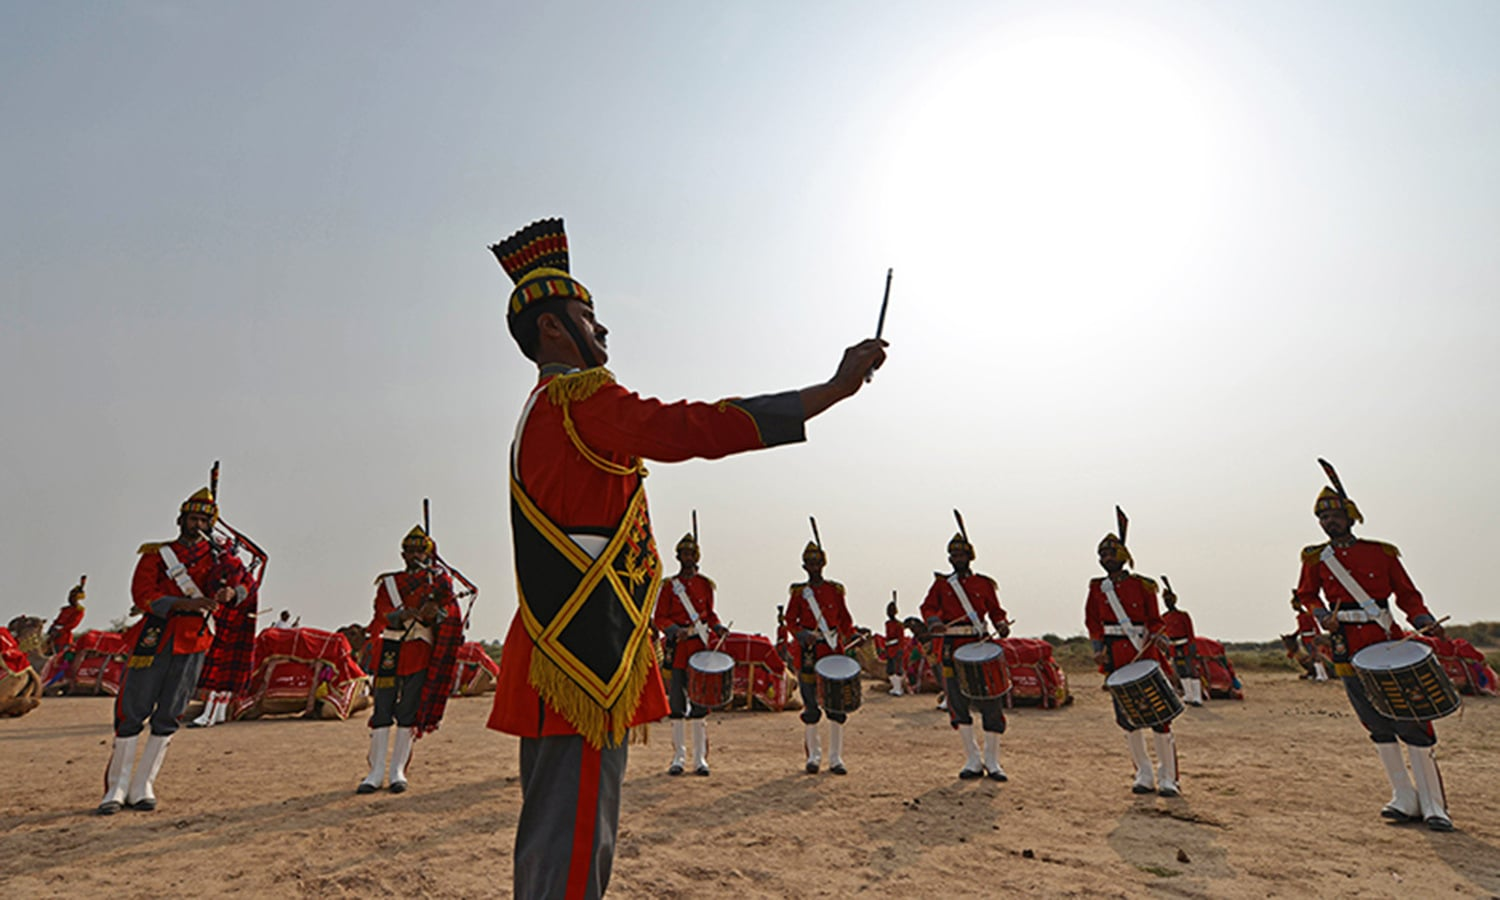 In this photograph taken on November 13, 2015, Band Major of Pakistan Desert Rangers, Muhammad Iqbal (C) conducts his team members before they mount on camels for a march in Moj Garh, some 100 kilometres east of Bahawalpur in Punjab Province. —AFP